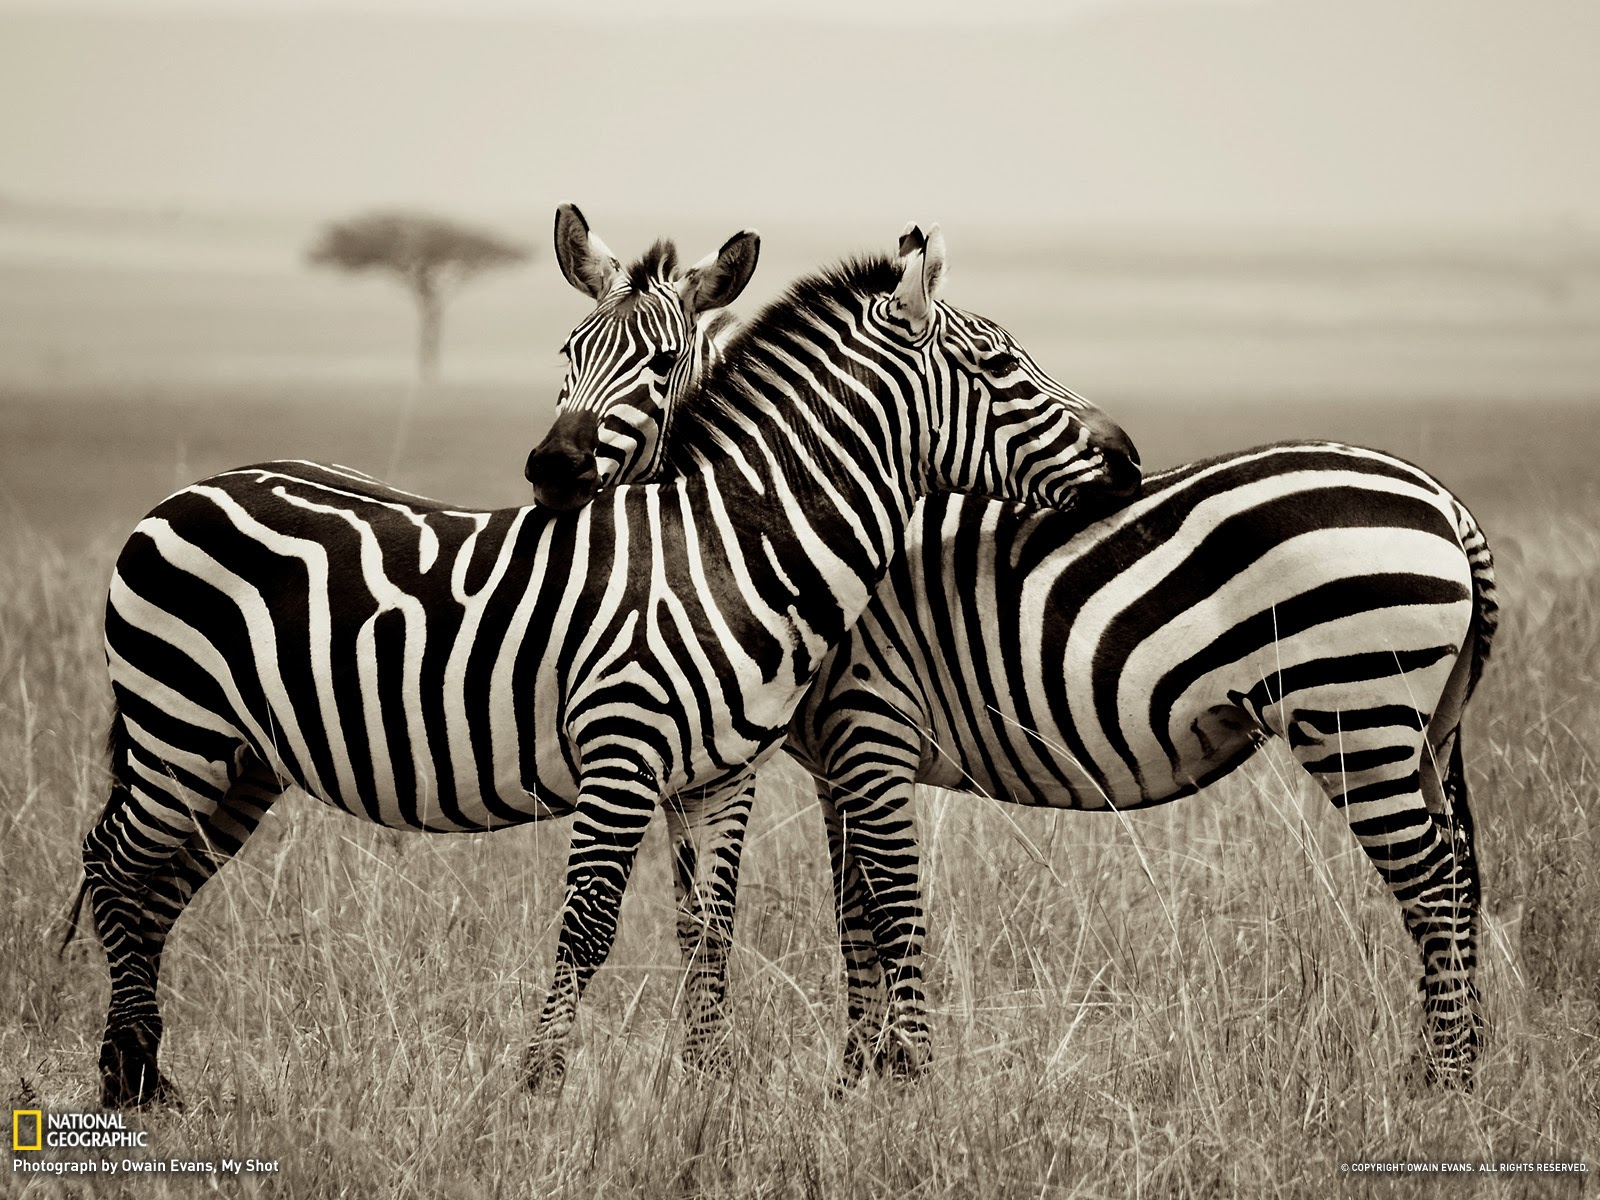 zebra wallpaper free computer beautiful desktop. Black Bedroom Furniture Sets. Home Design Ideas